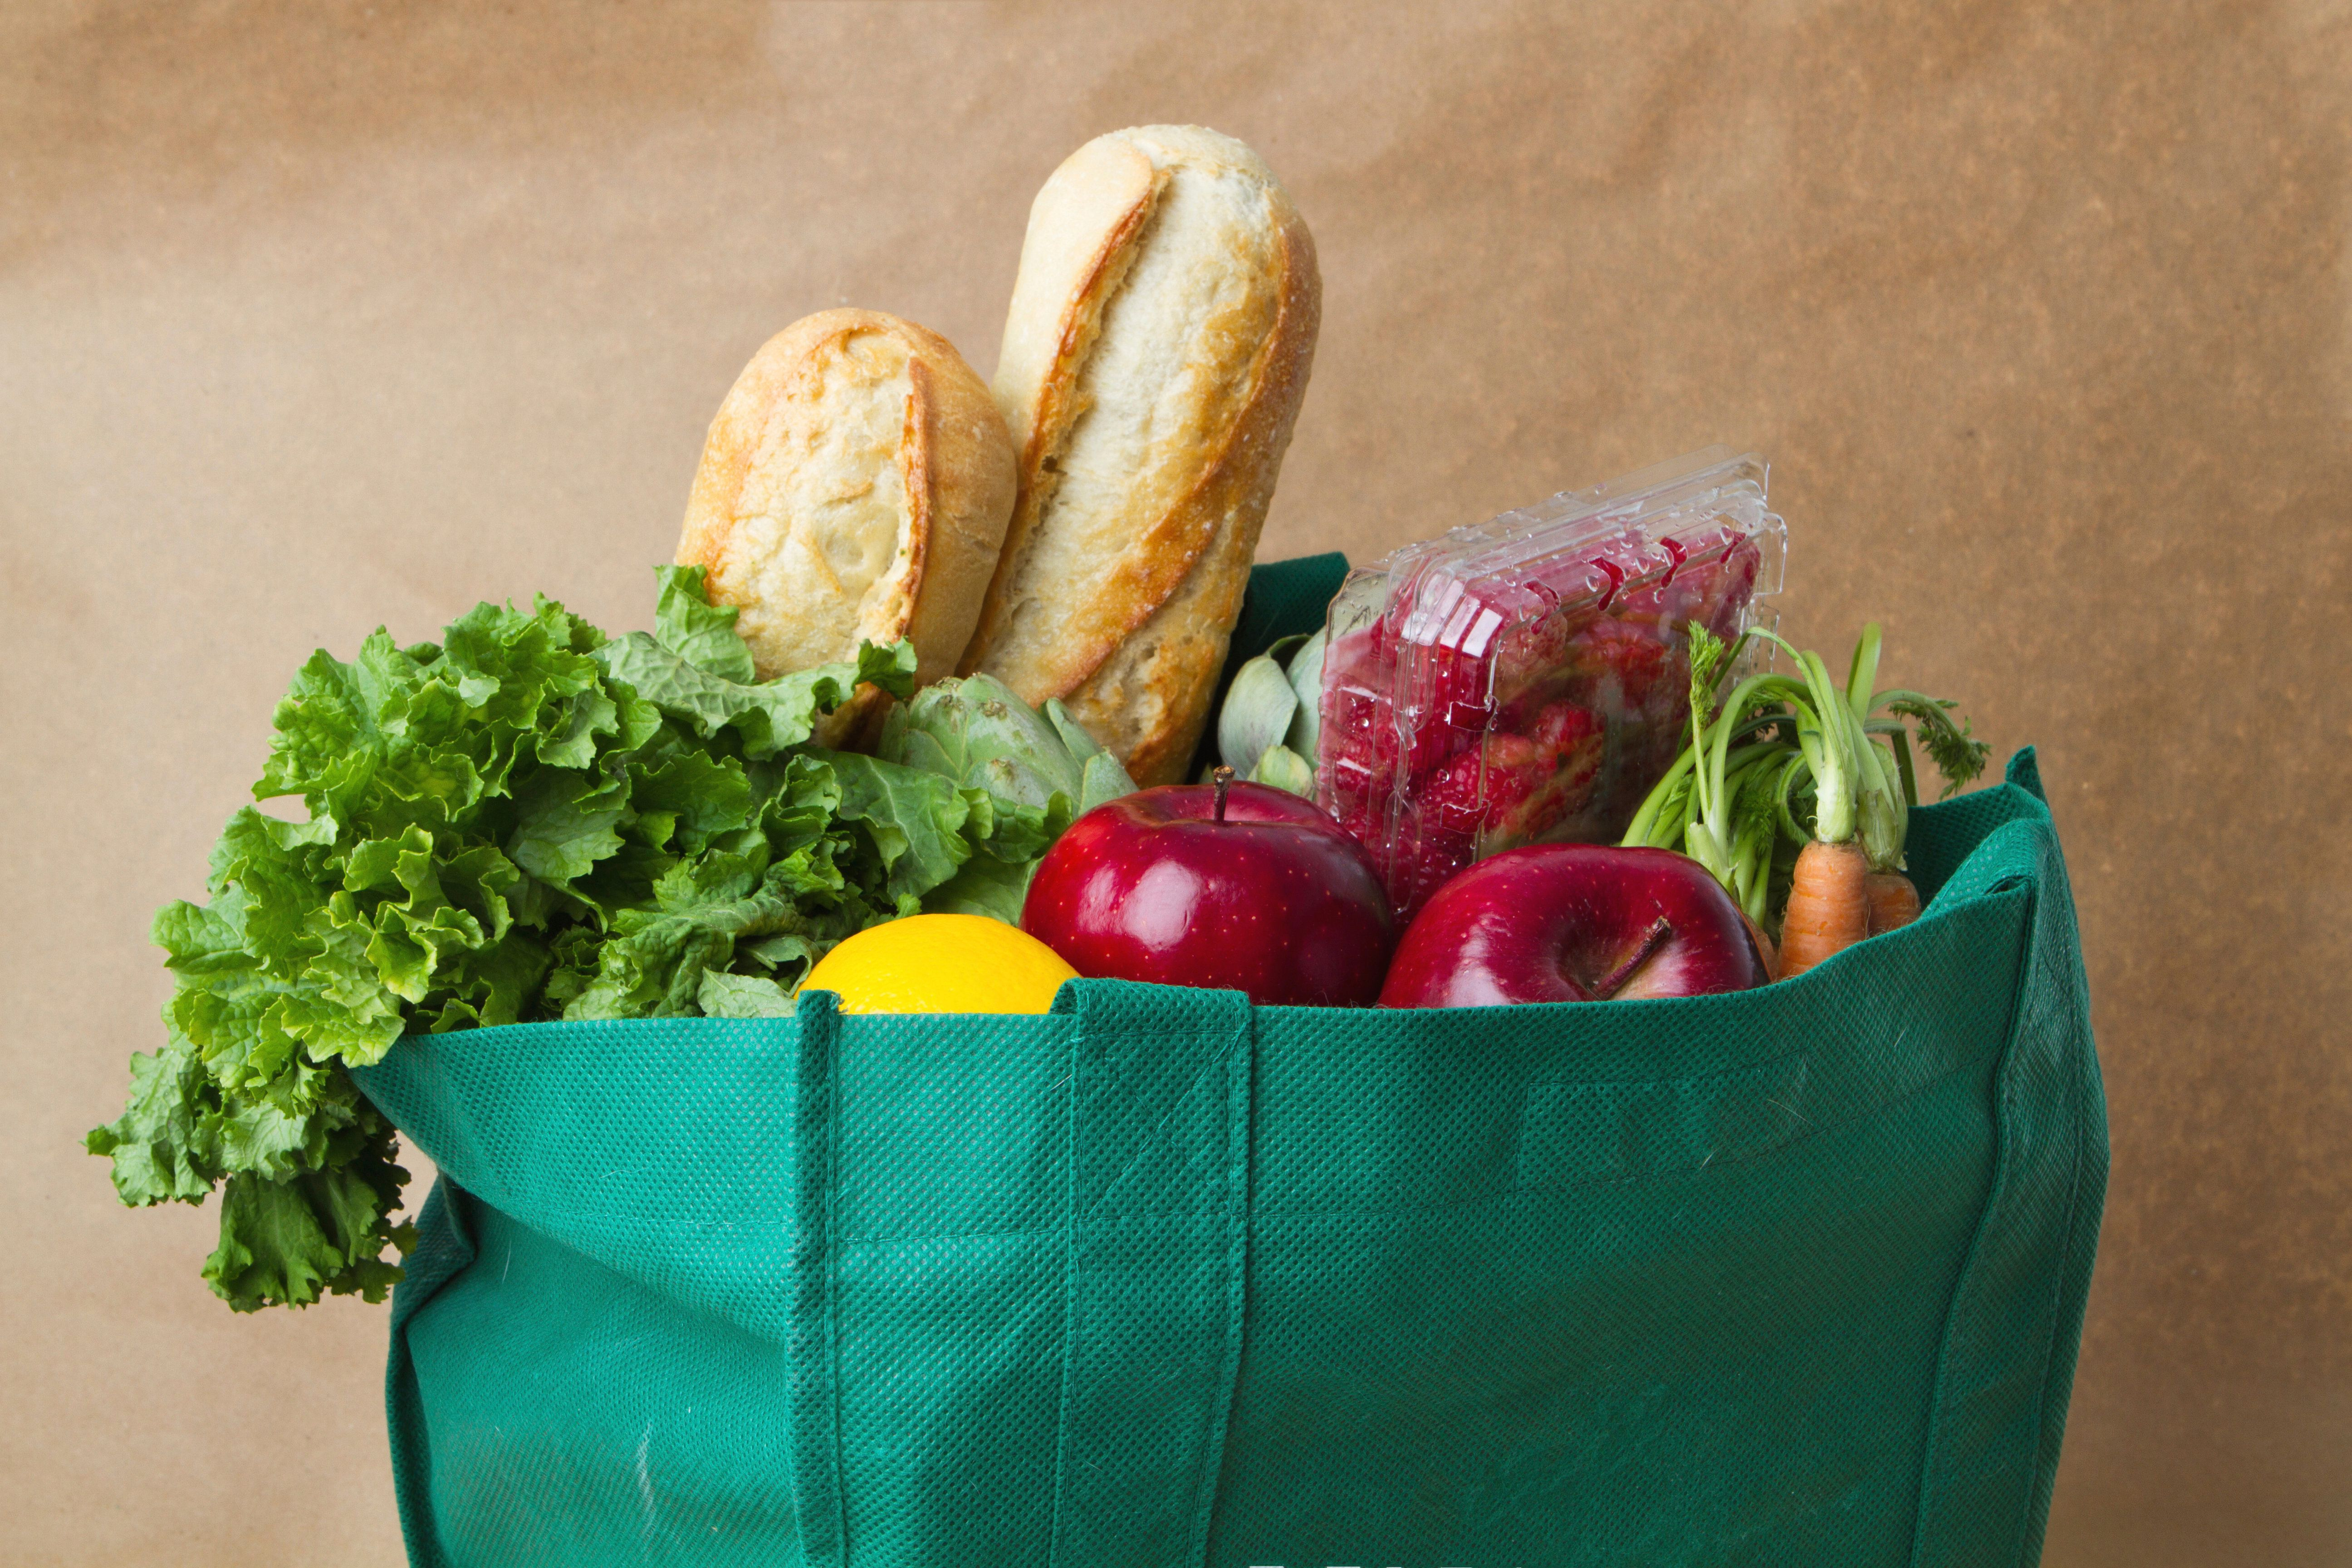 How To Avoid Food Poisoning When Using Bags For